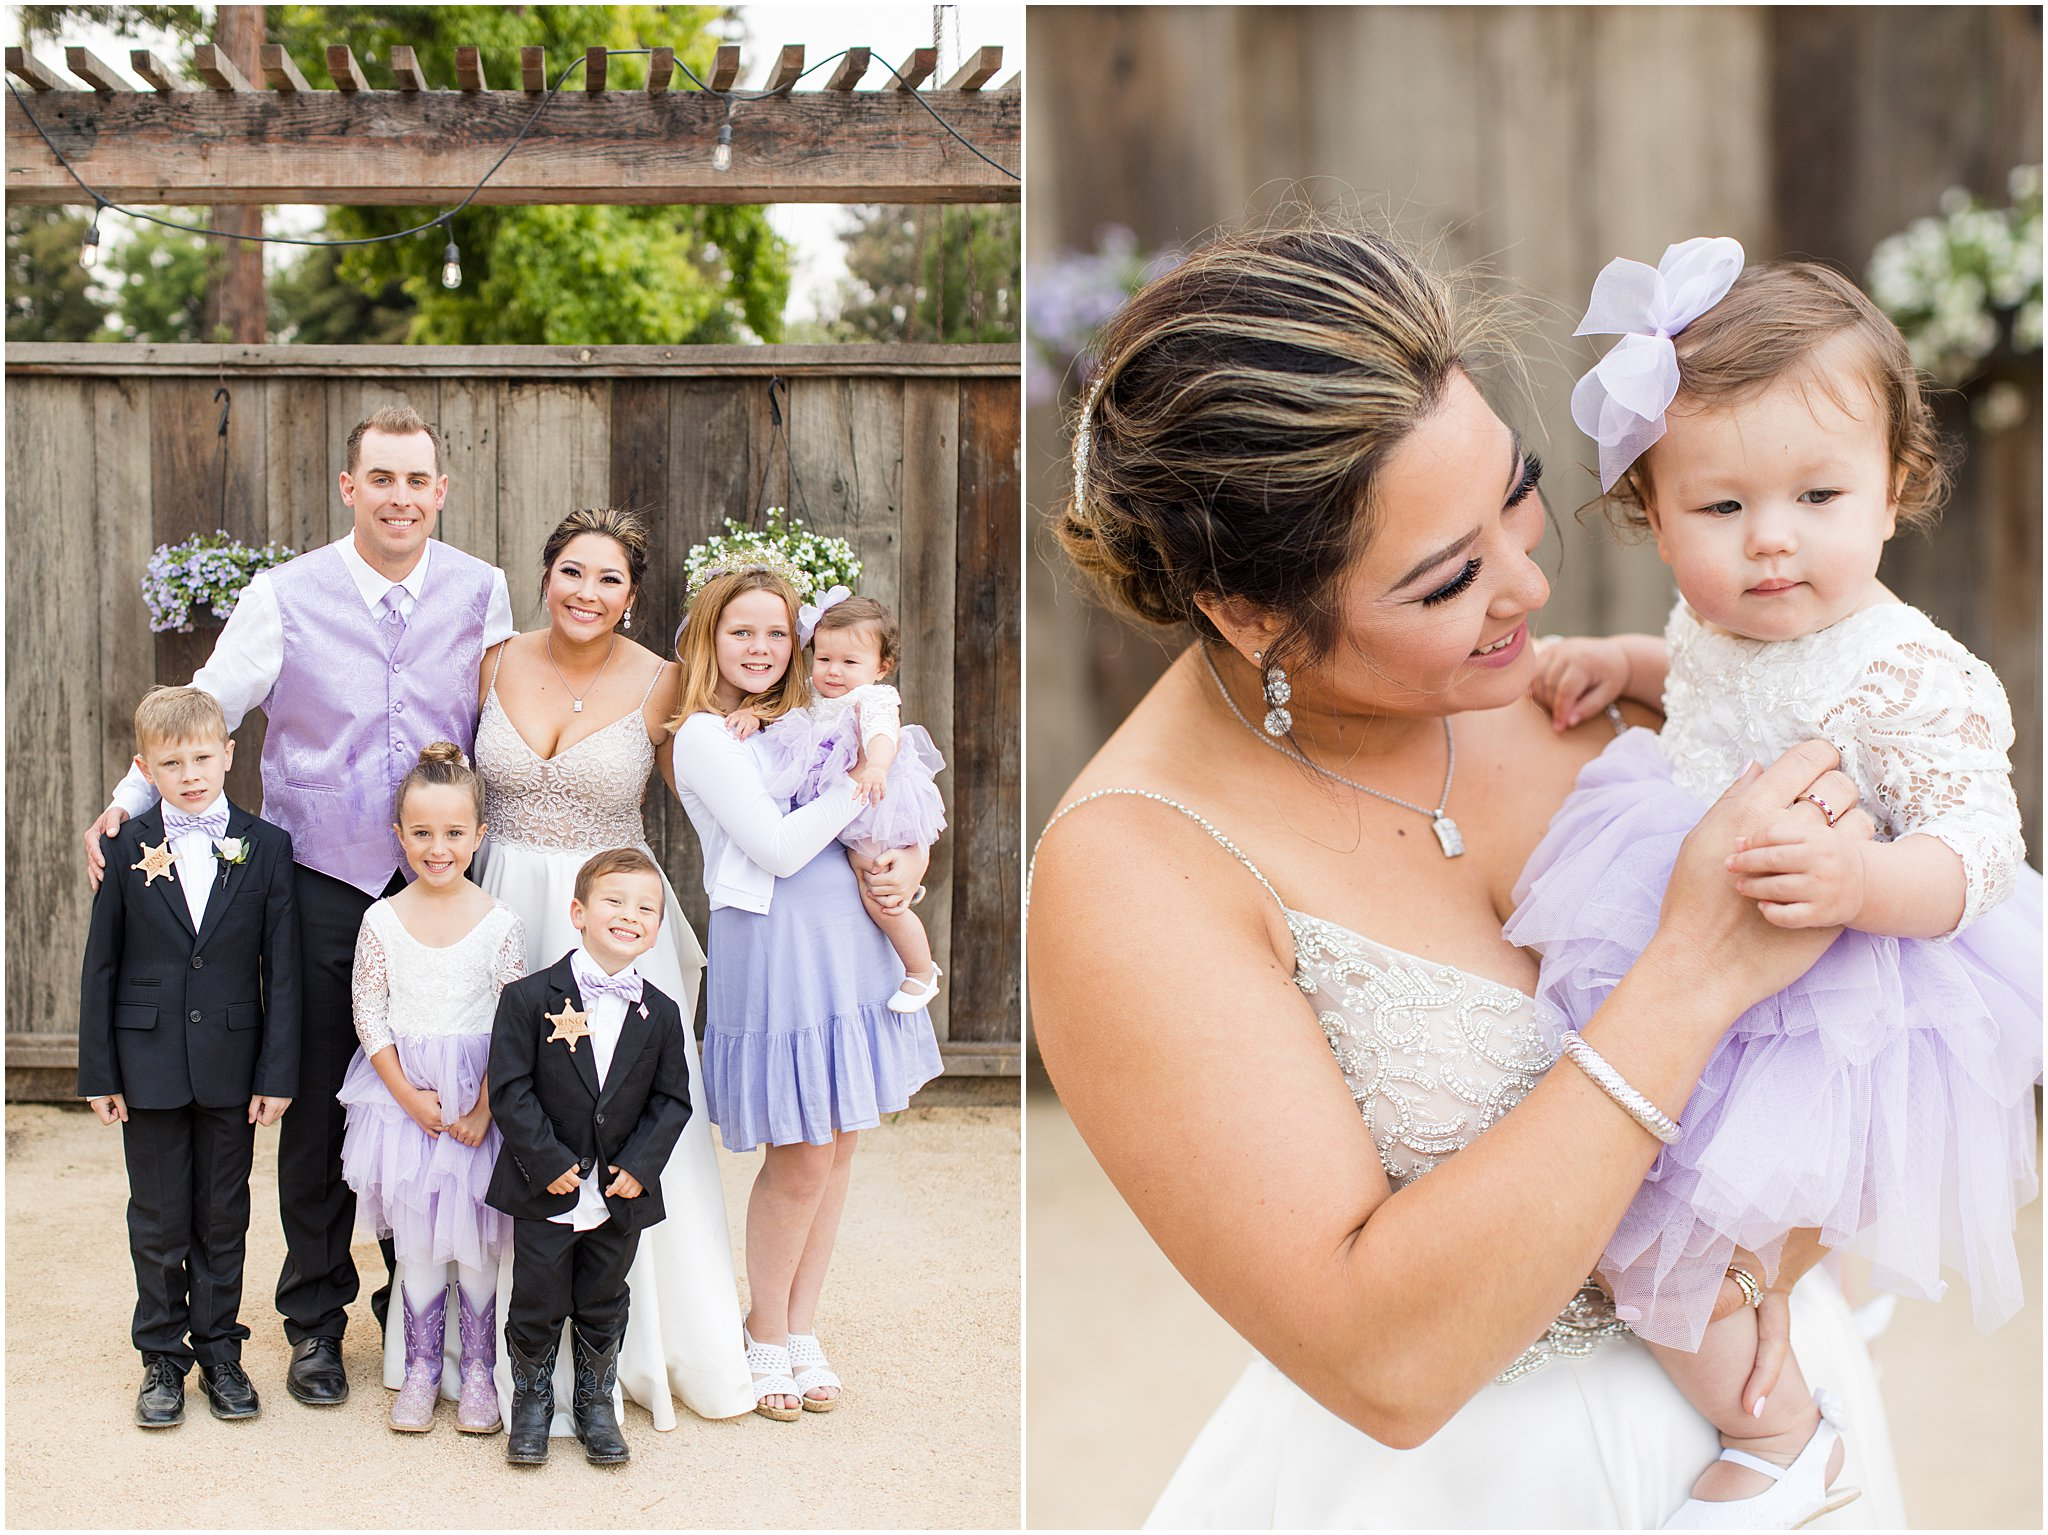 2019 wedding san juan bautista hacienda de leal vineyards bay area wedding photographer_0073.jpg